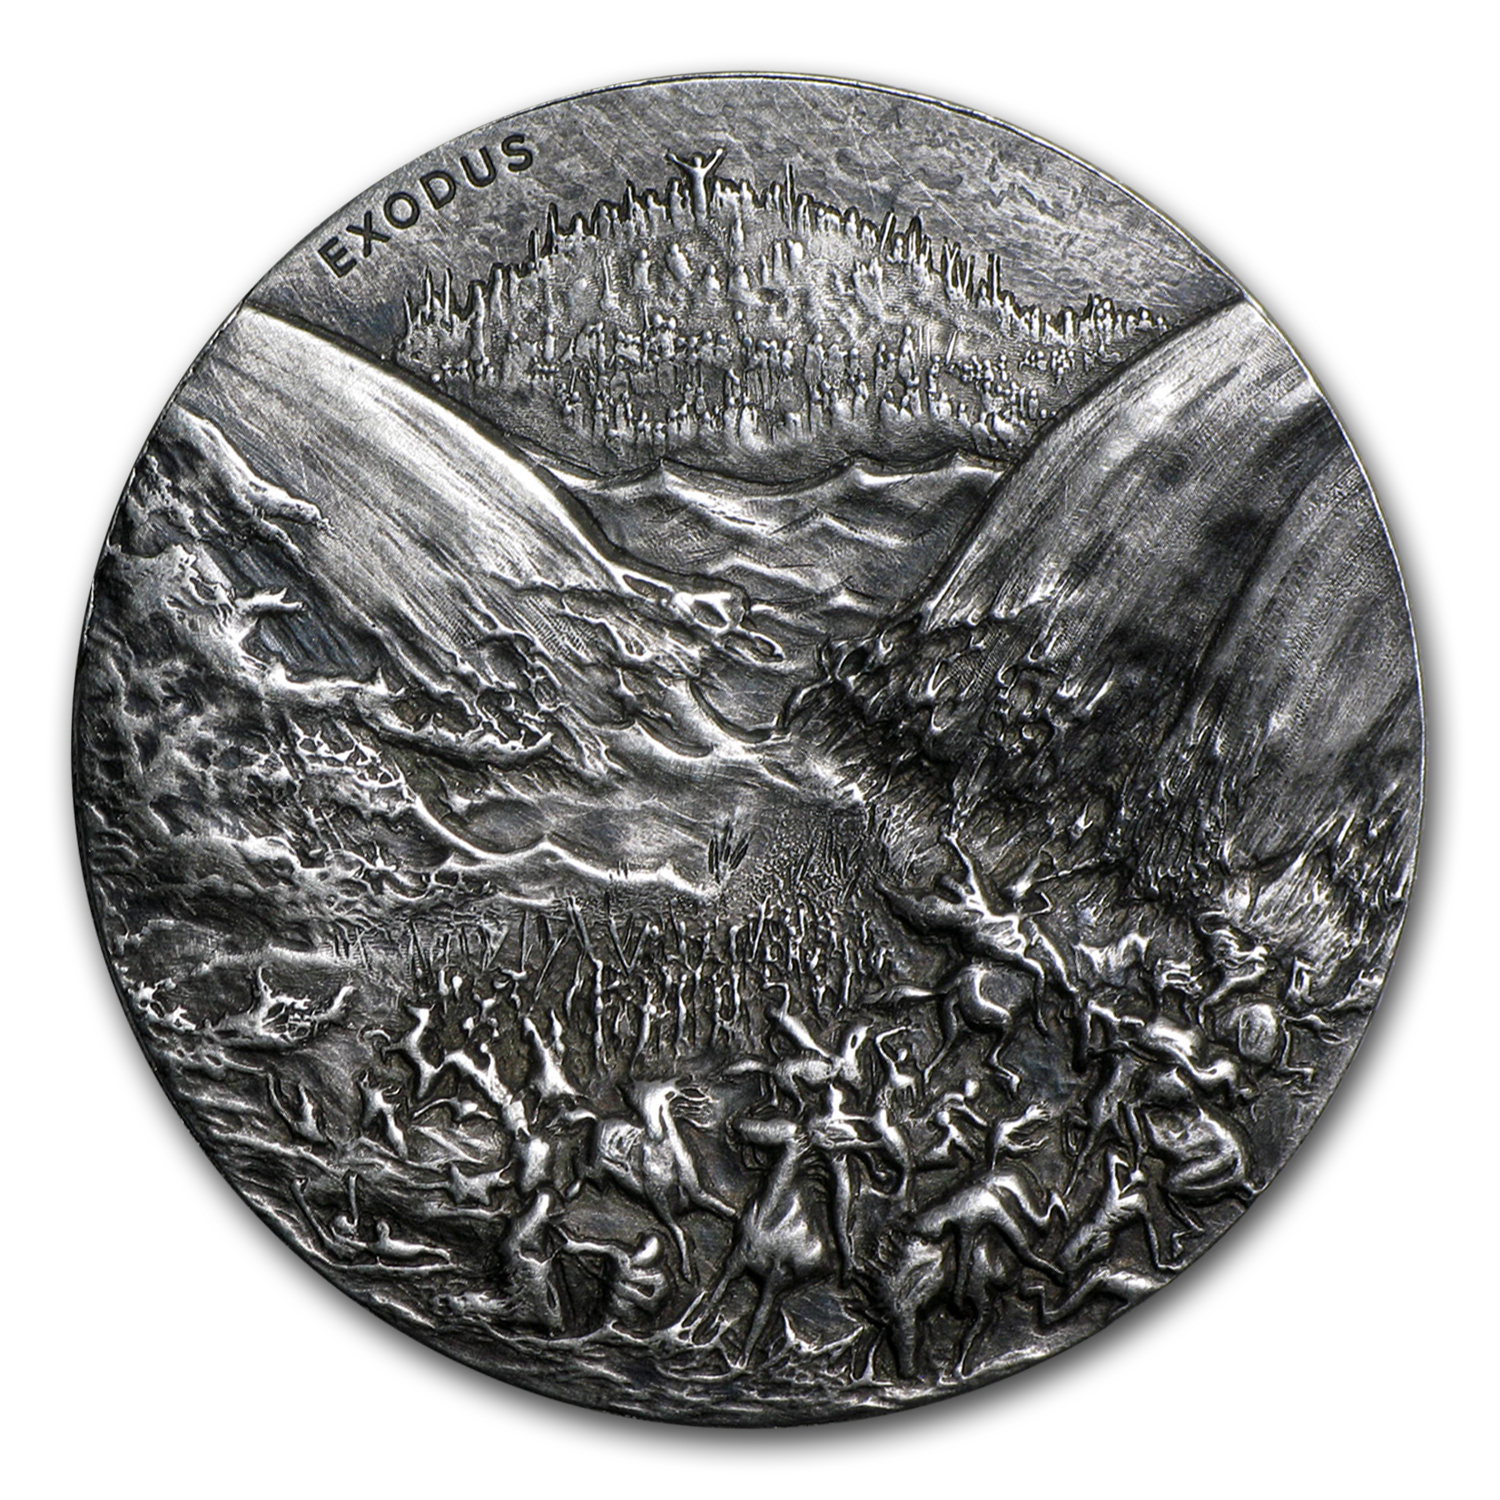 2 oz Silver Coin – Biblical Series (Ten Commandments)